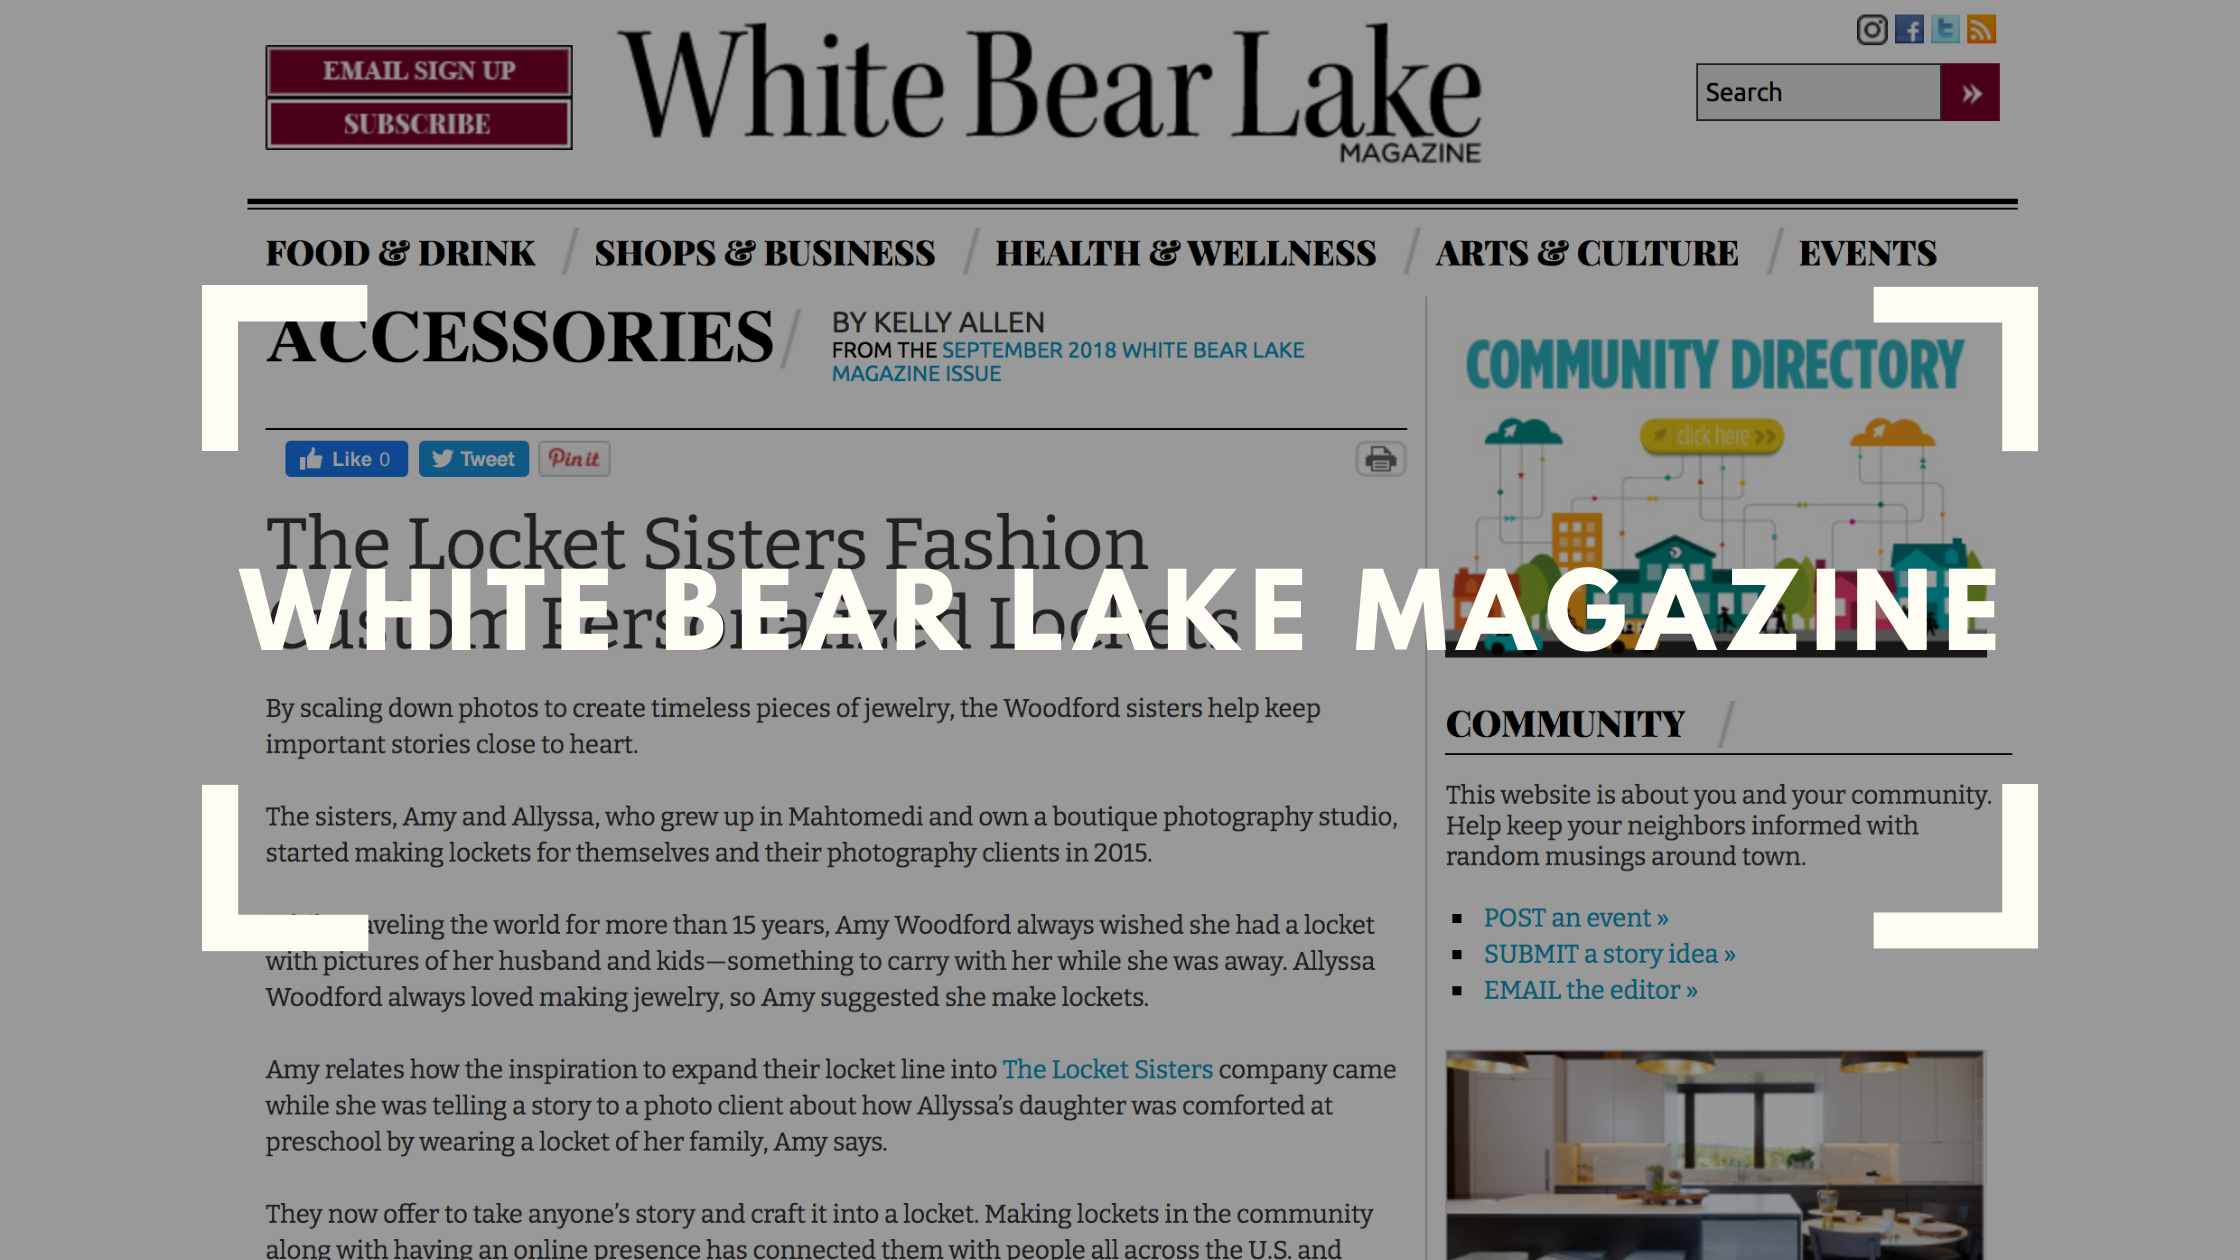 the locket sisters graphic on the white bear lake magazine website